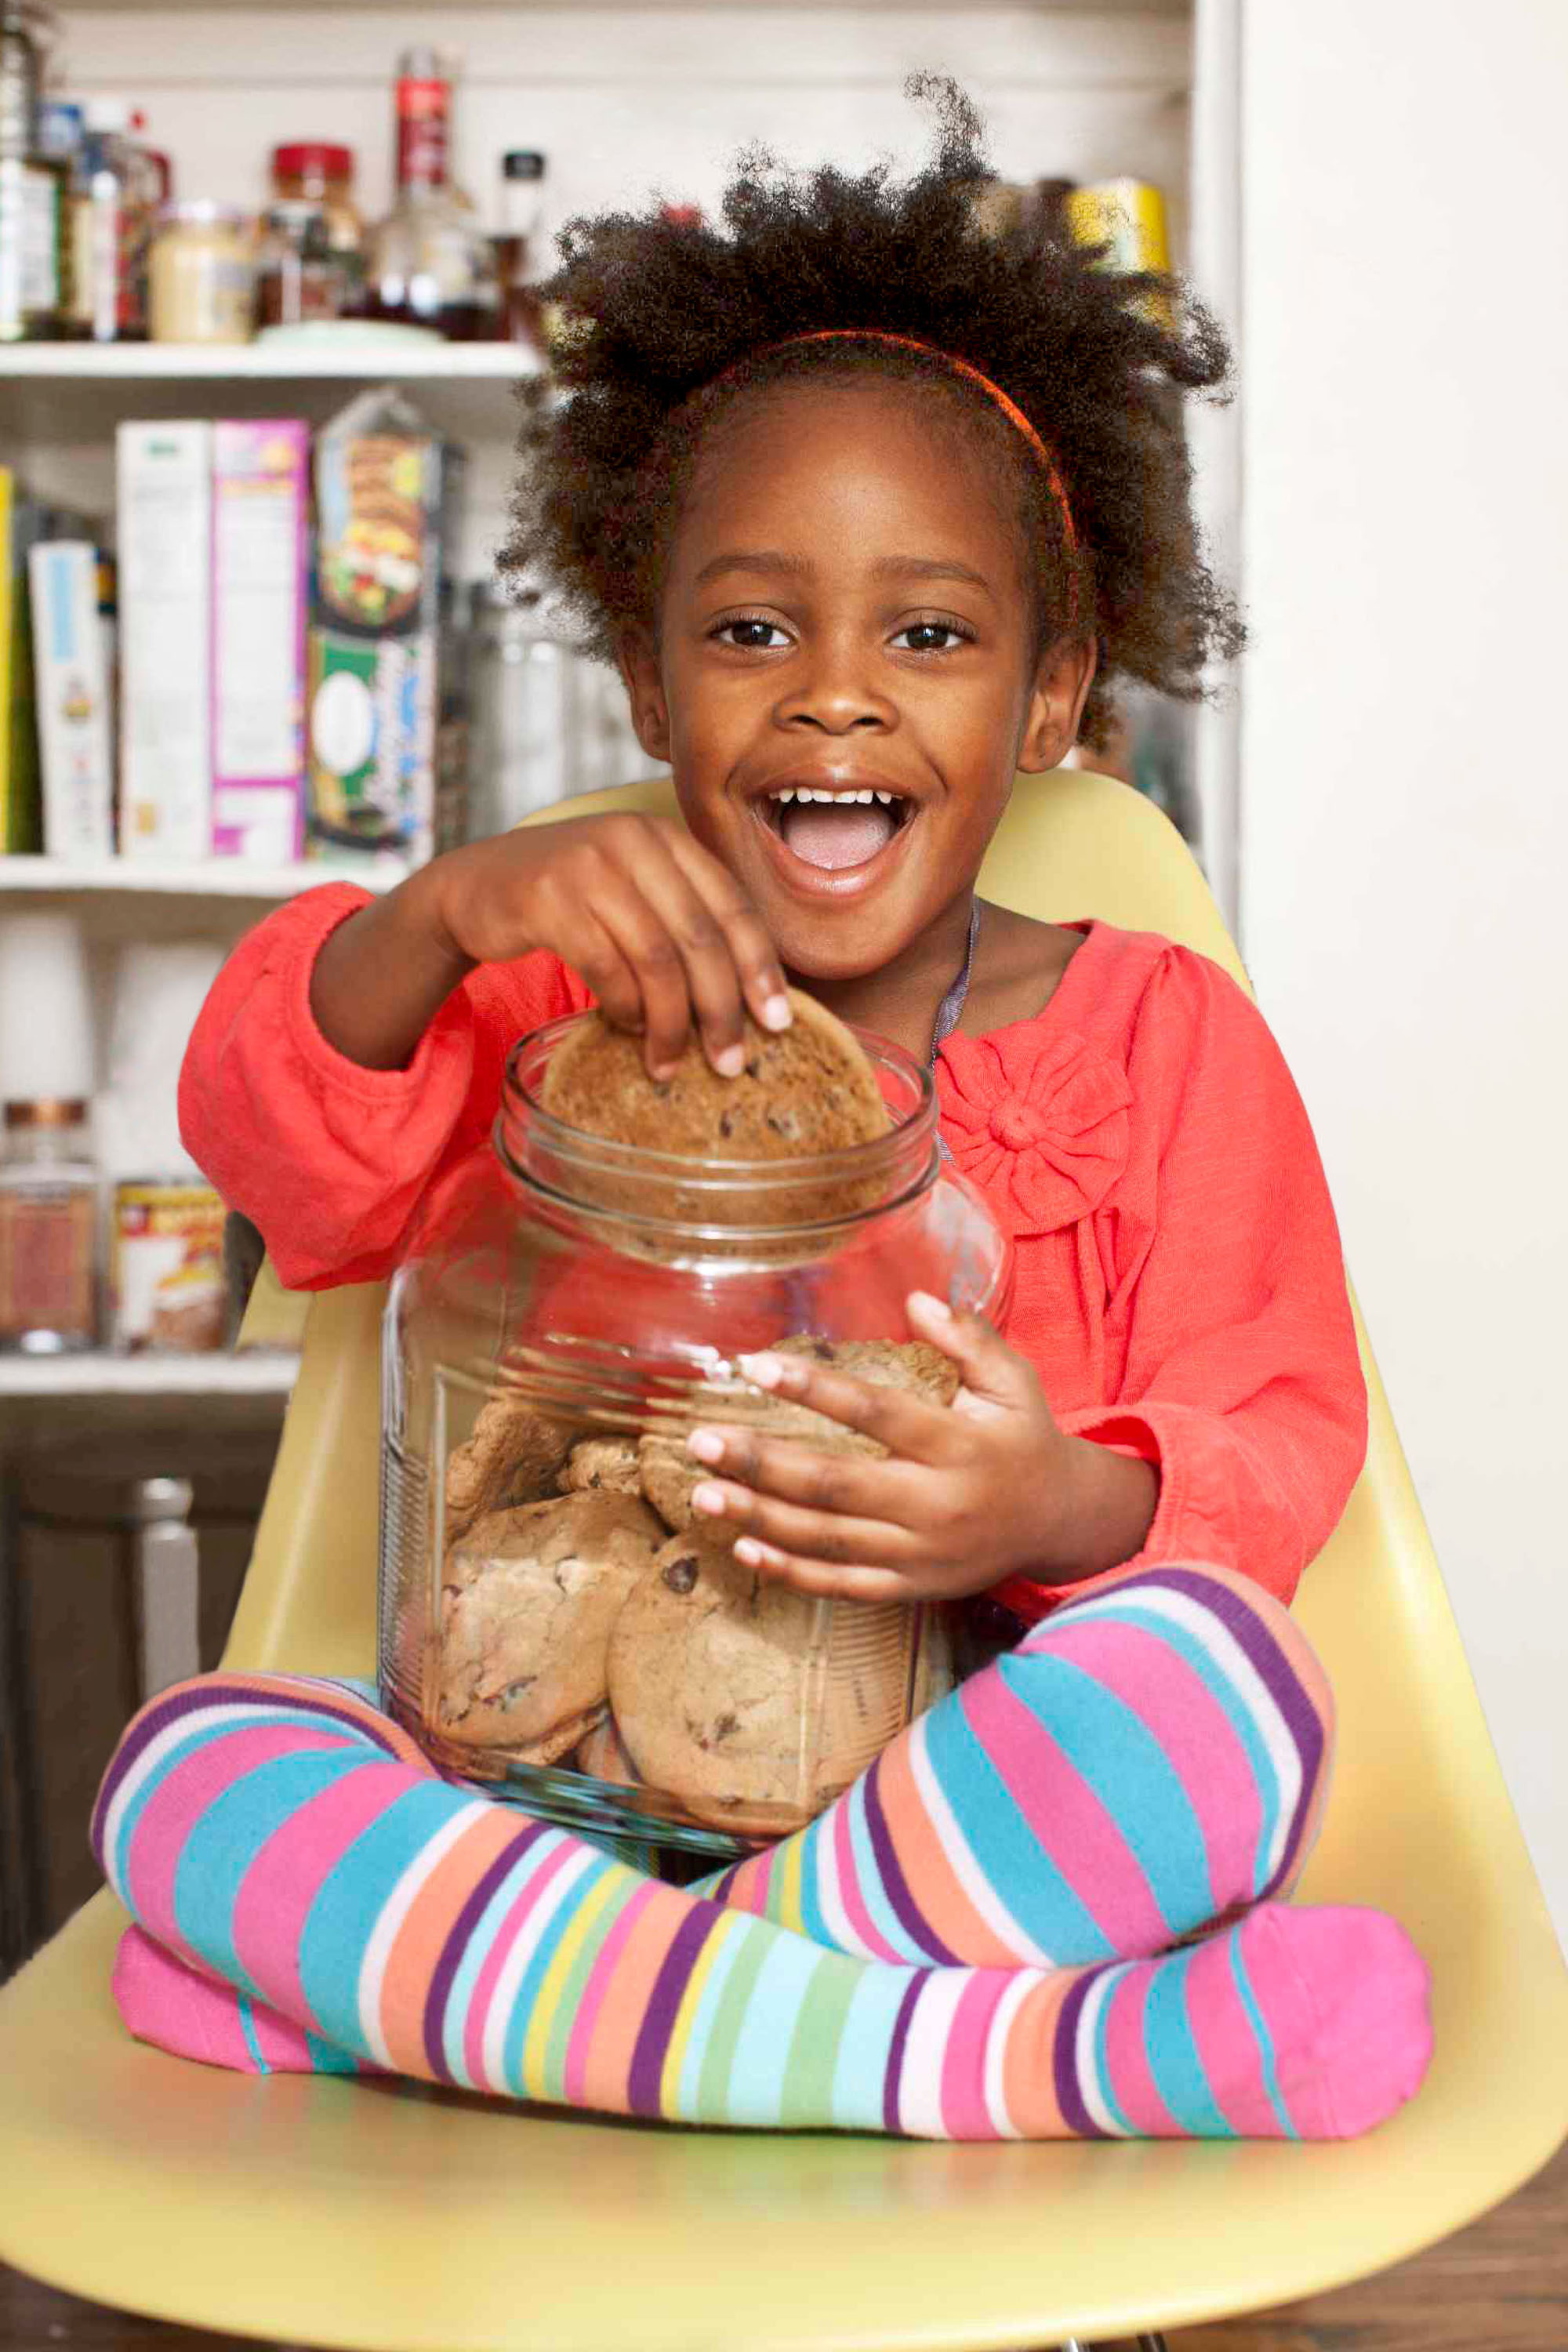 girl with striped leggings grabbing cookie out of jar